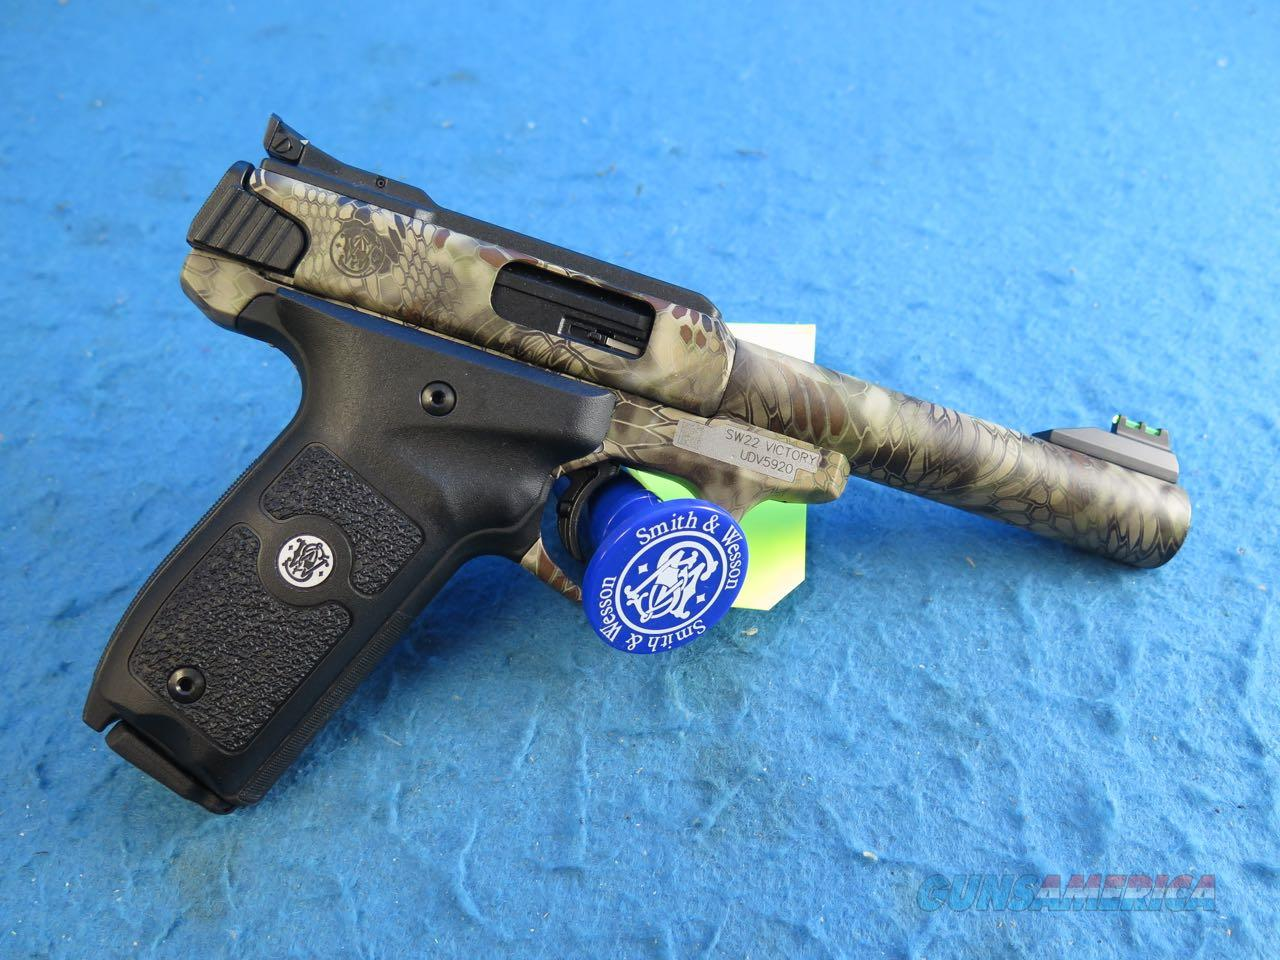 Smith & Wesson SW22 Victory Kryptek Semi Auto .22 LR Pistol SKU 10297 **New**  Guns > Pistols > Smith & Wesson Pistols - Autos > .22 Autos